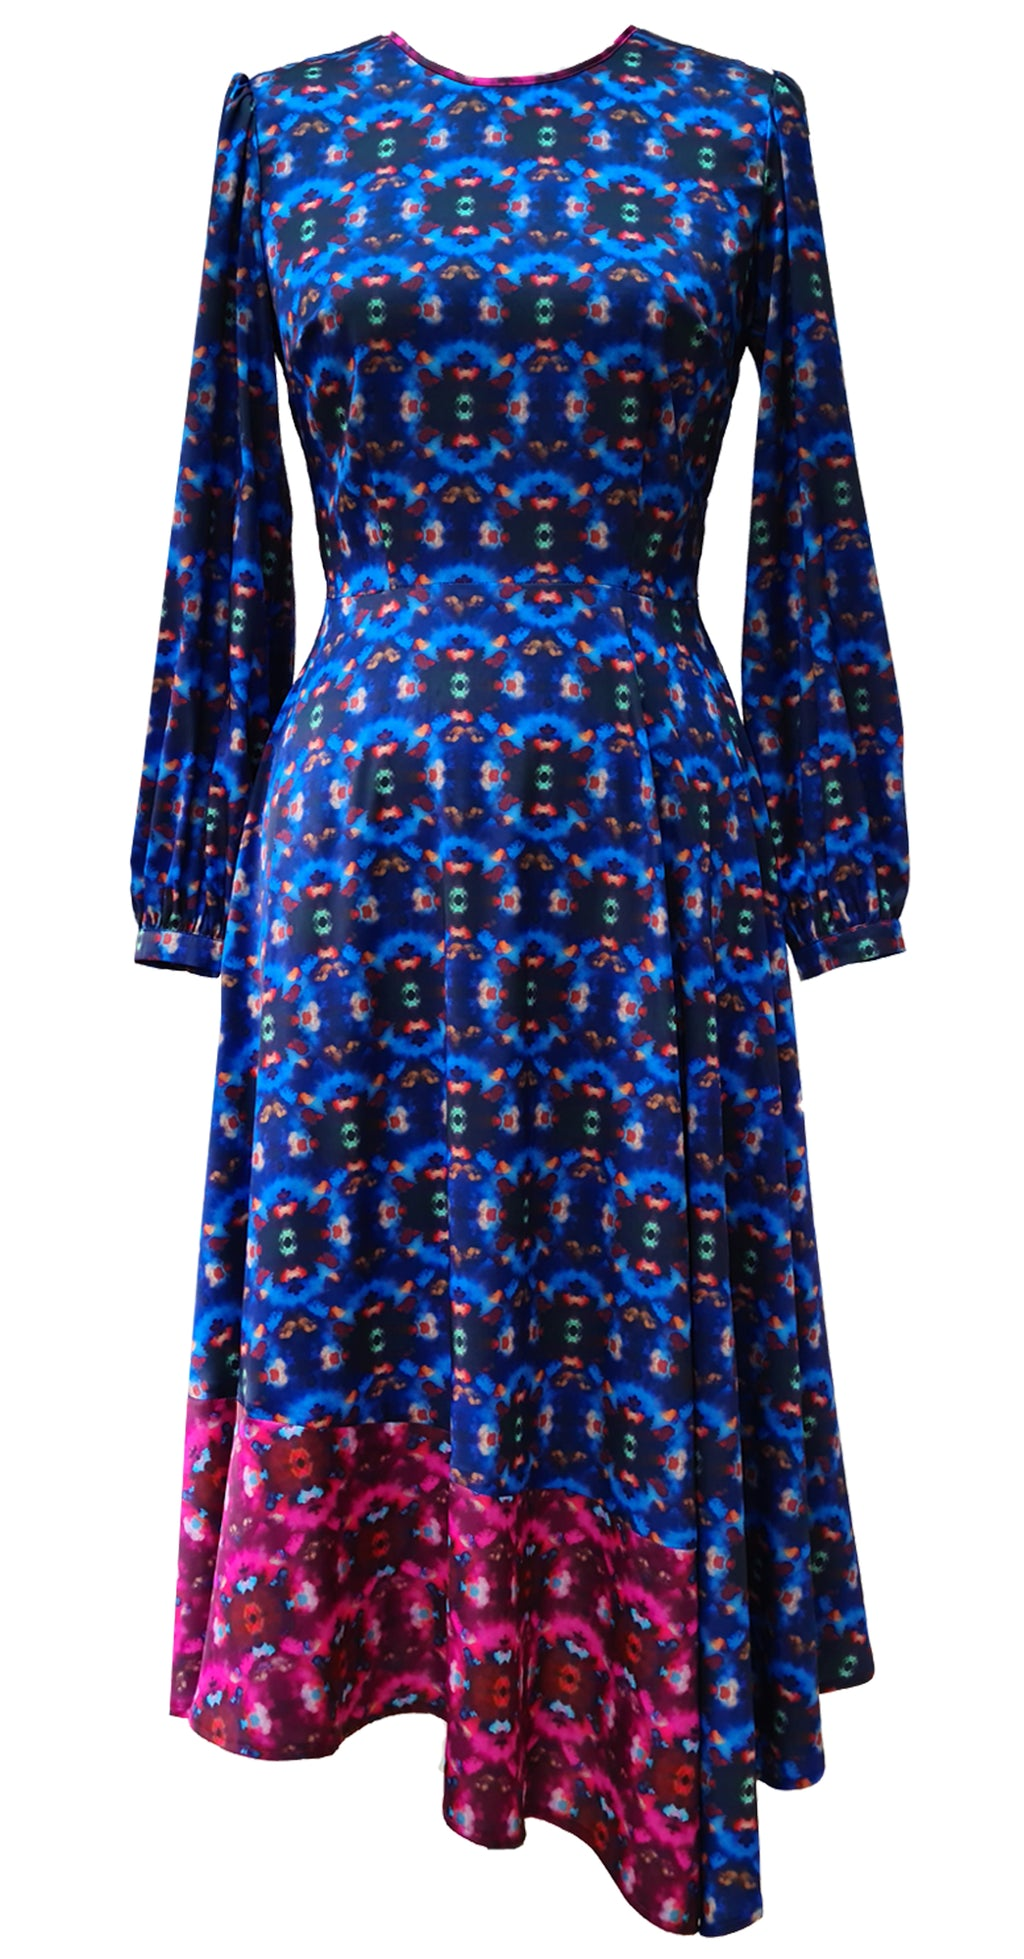 Dream Catcher Dress DRC326 Blue/Pink Crystal Print